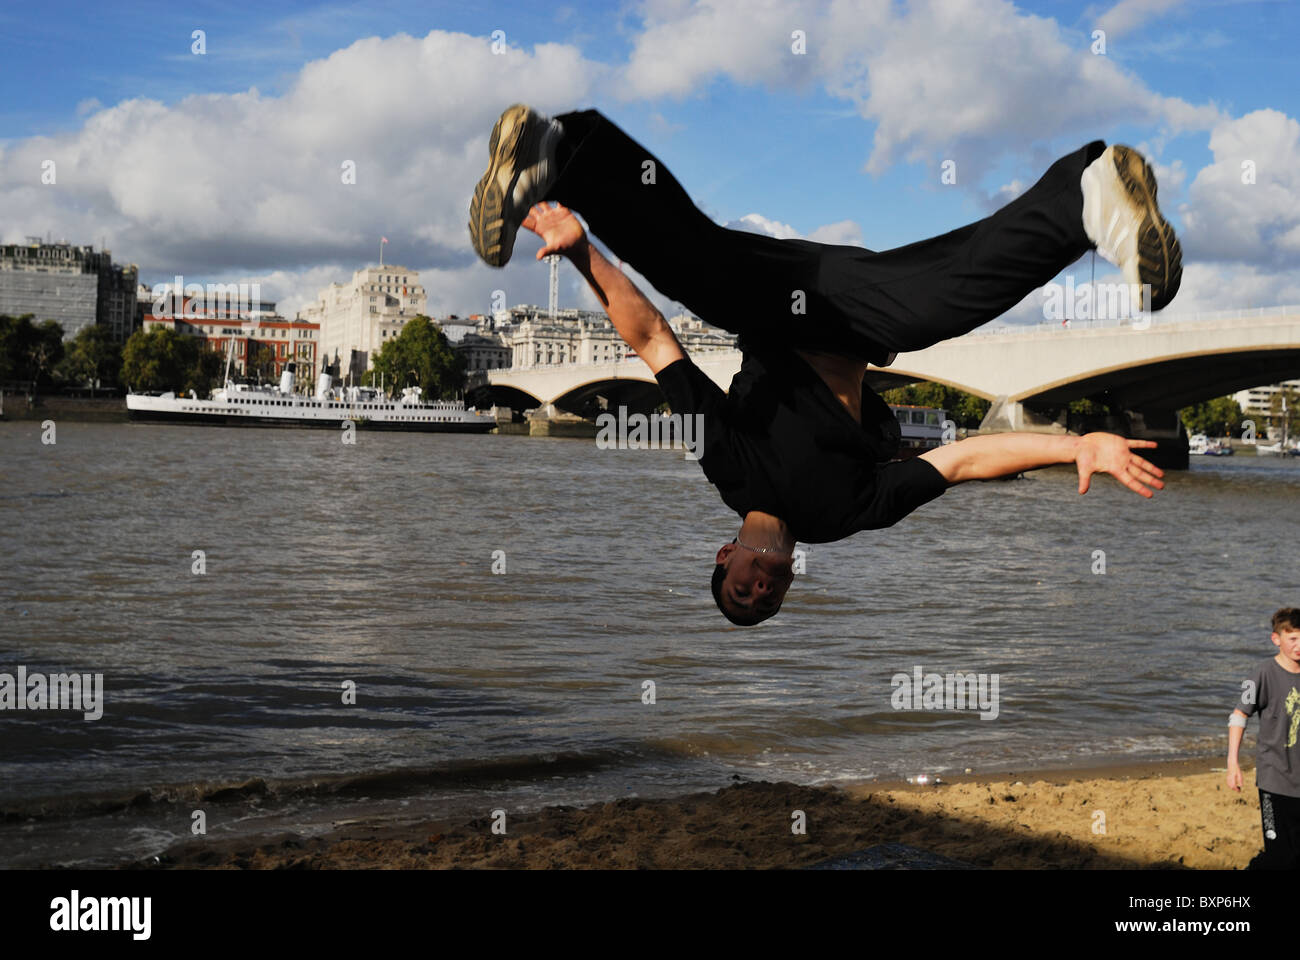 Traceur practicing the art of Parkour along the bank of the River Thames in London. - Stock Image